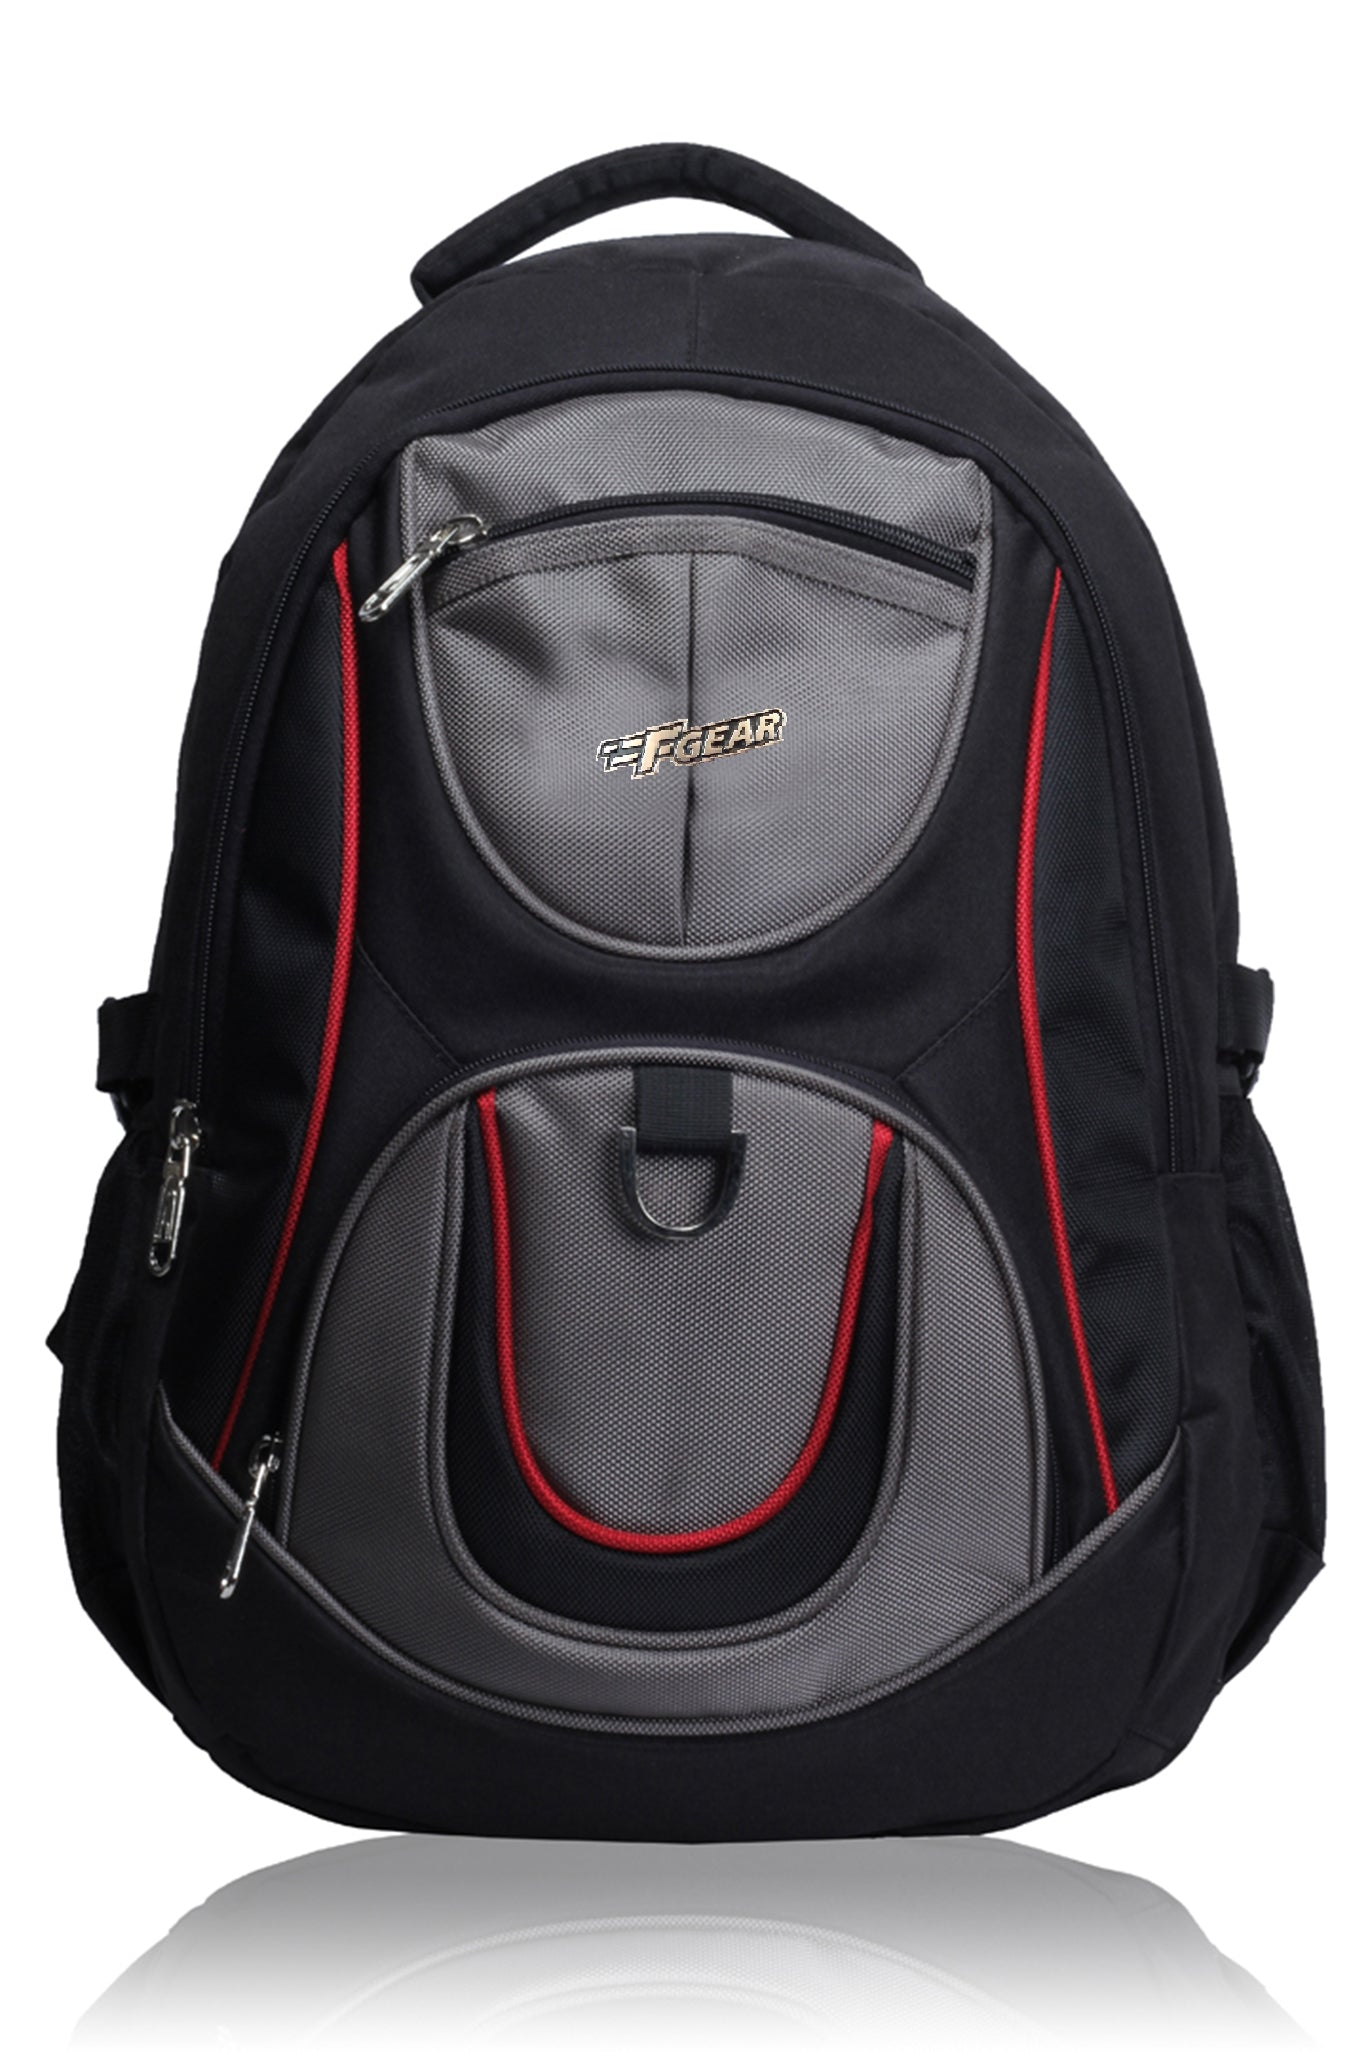 F Gear Axe Black Grey Casual Laptop Bag